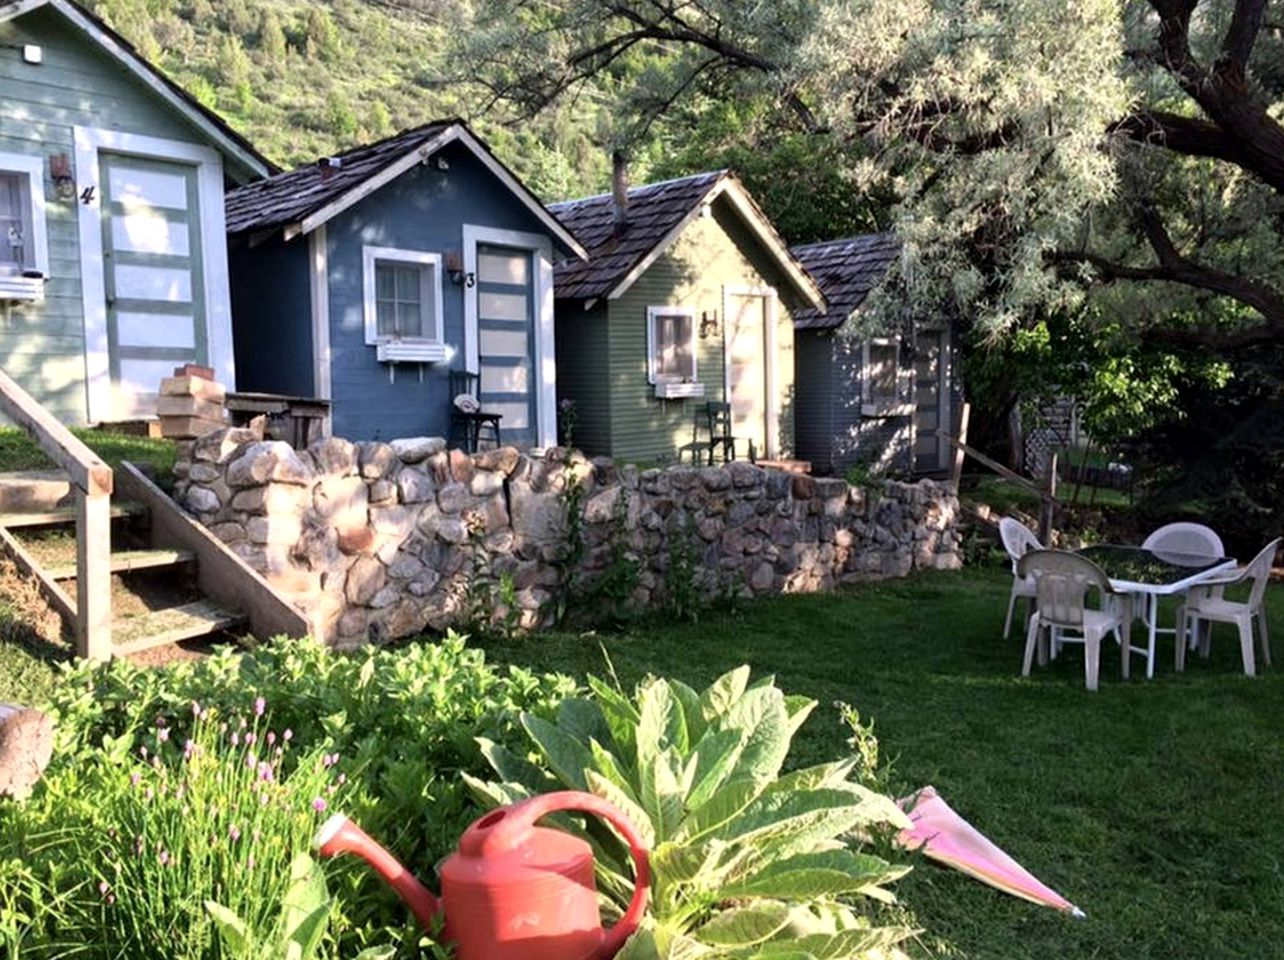 Cabins (Lava Hot Springs, Idaho, United States)